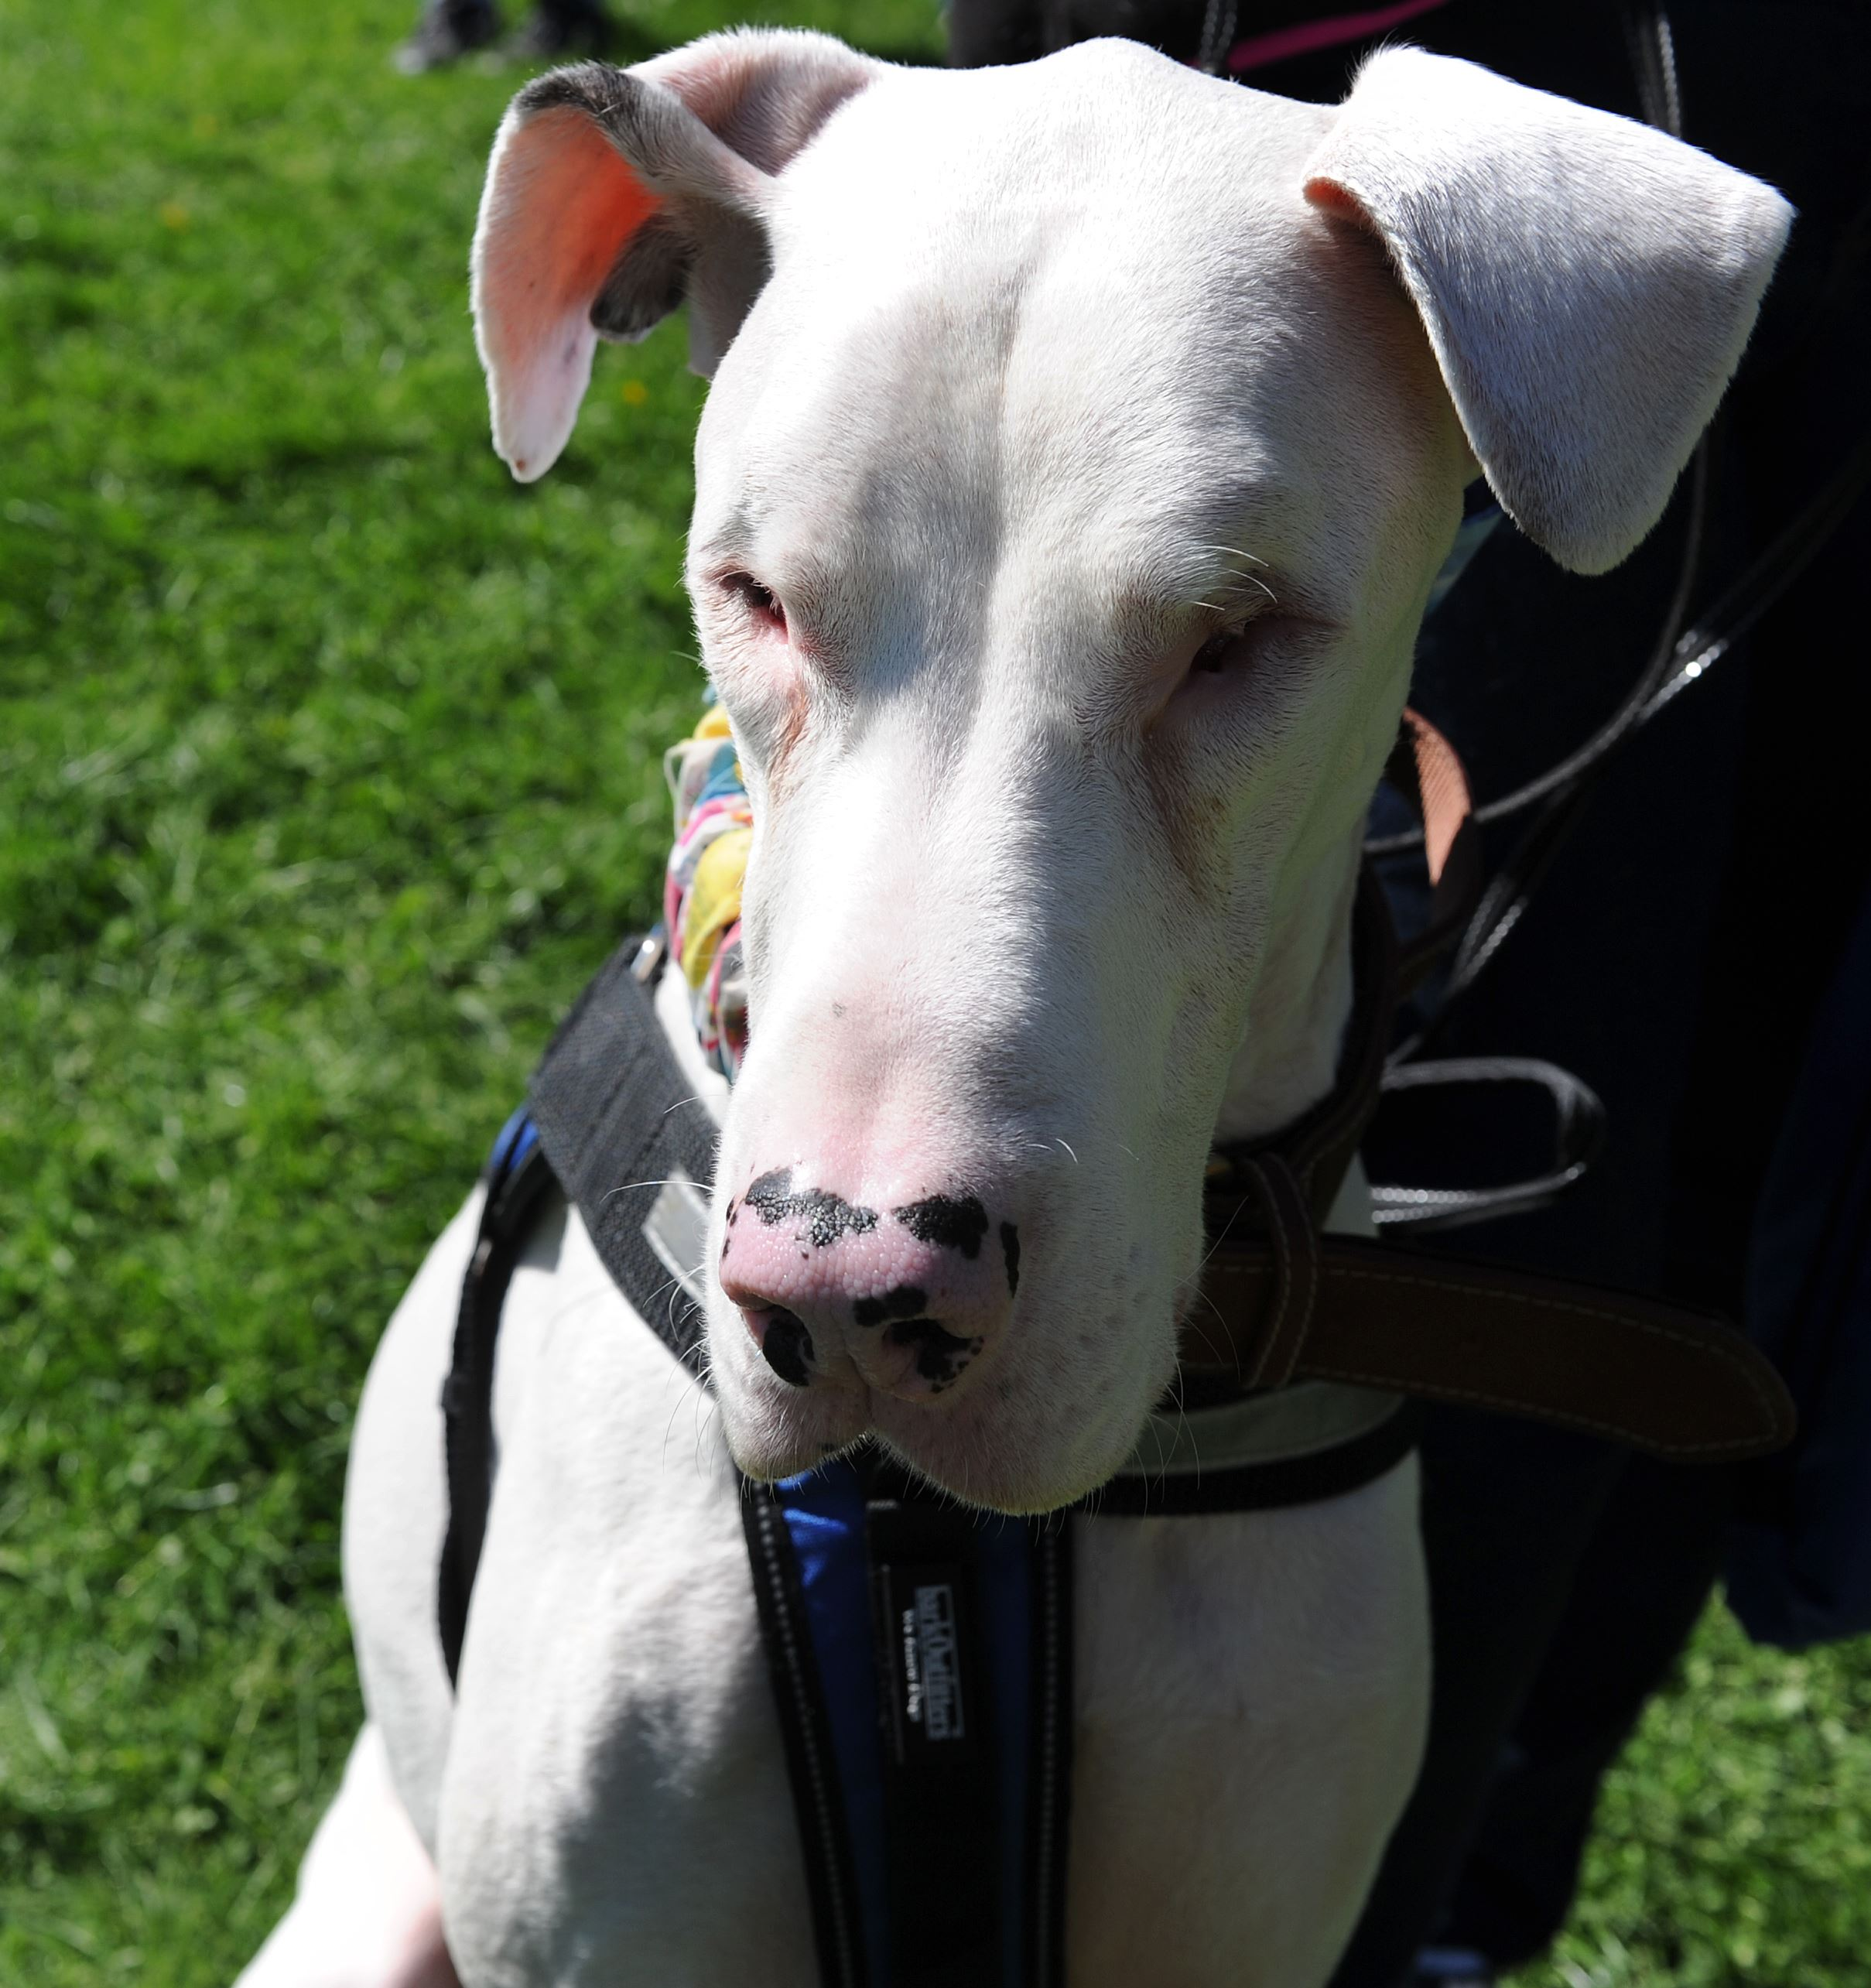 20170423ng-Petwalk9-8 Cody, a four-year-old Great Dane who was born blind and deaf, joined inthe Friends of Jupiter Walk in Boyce Park.